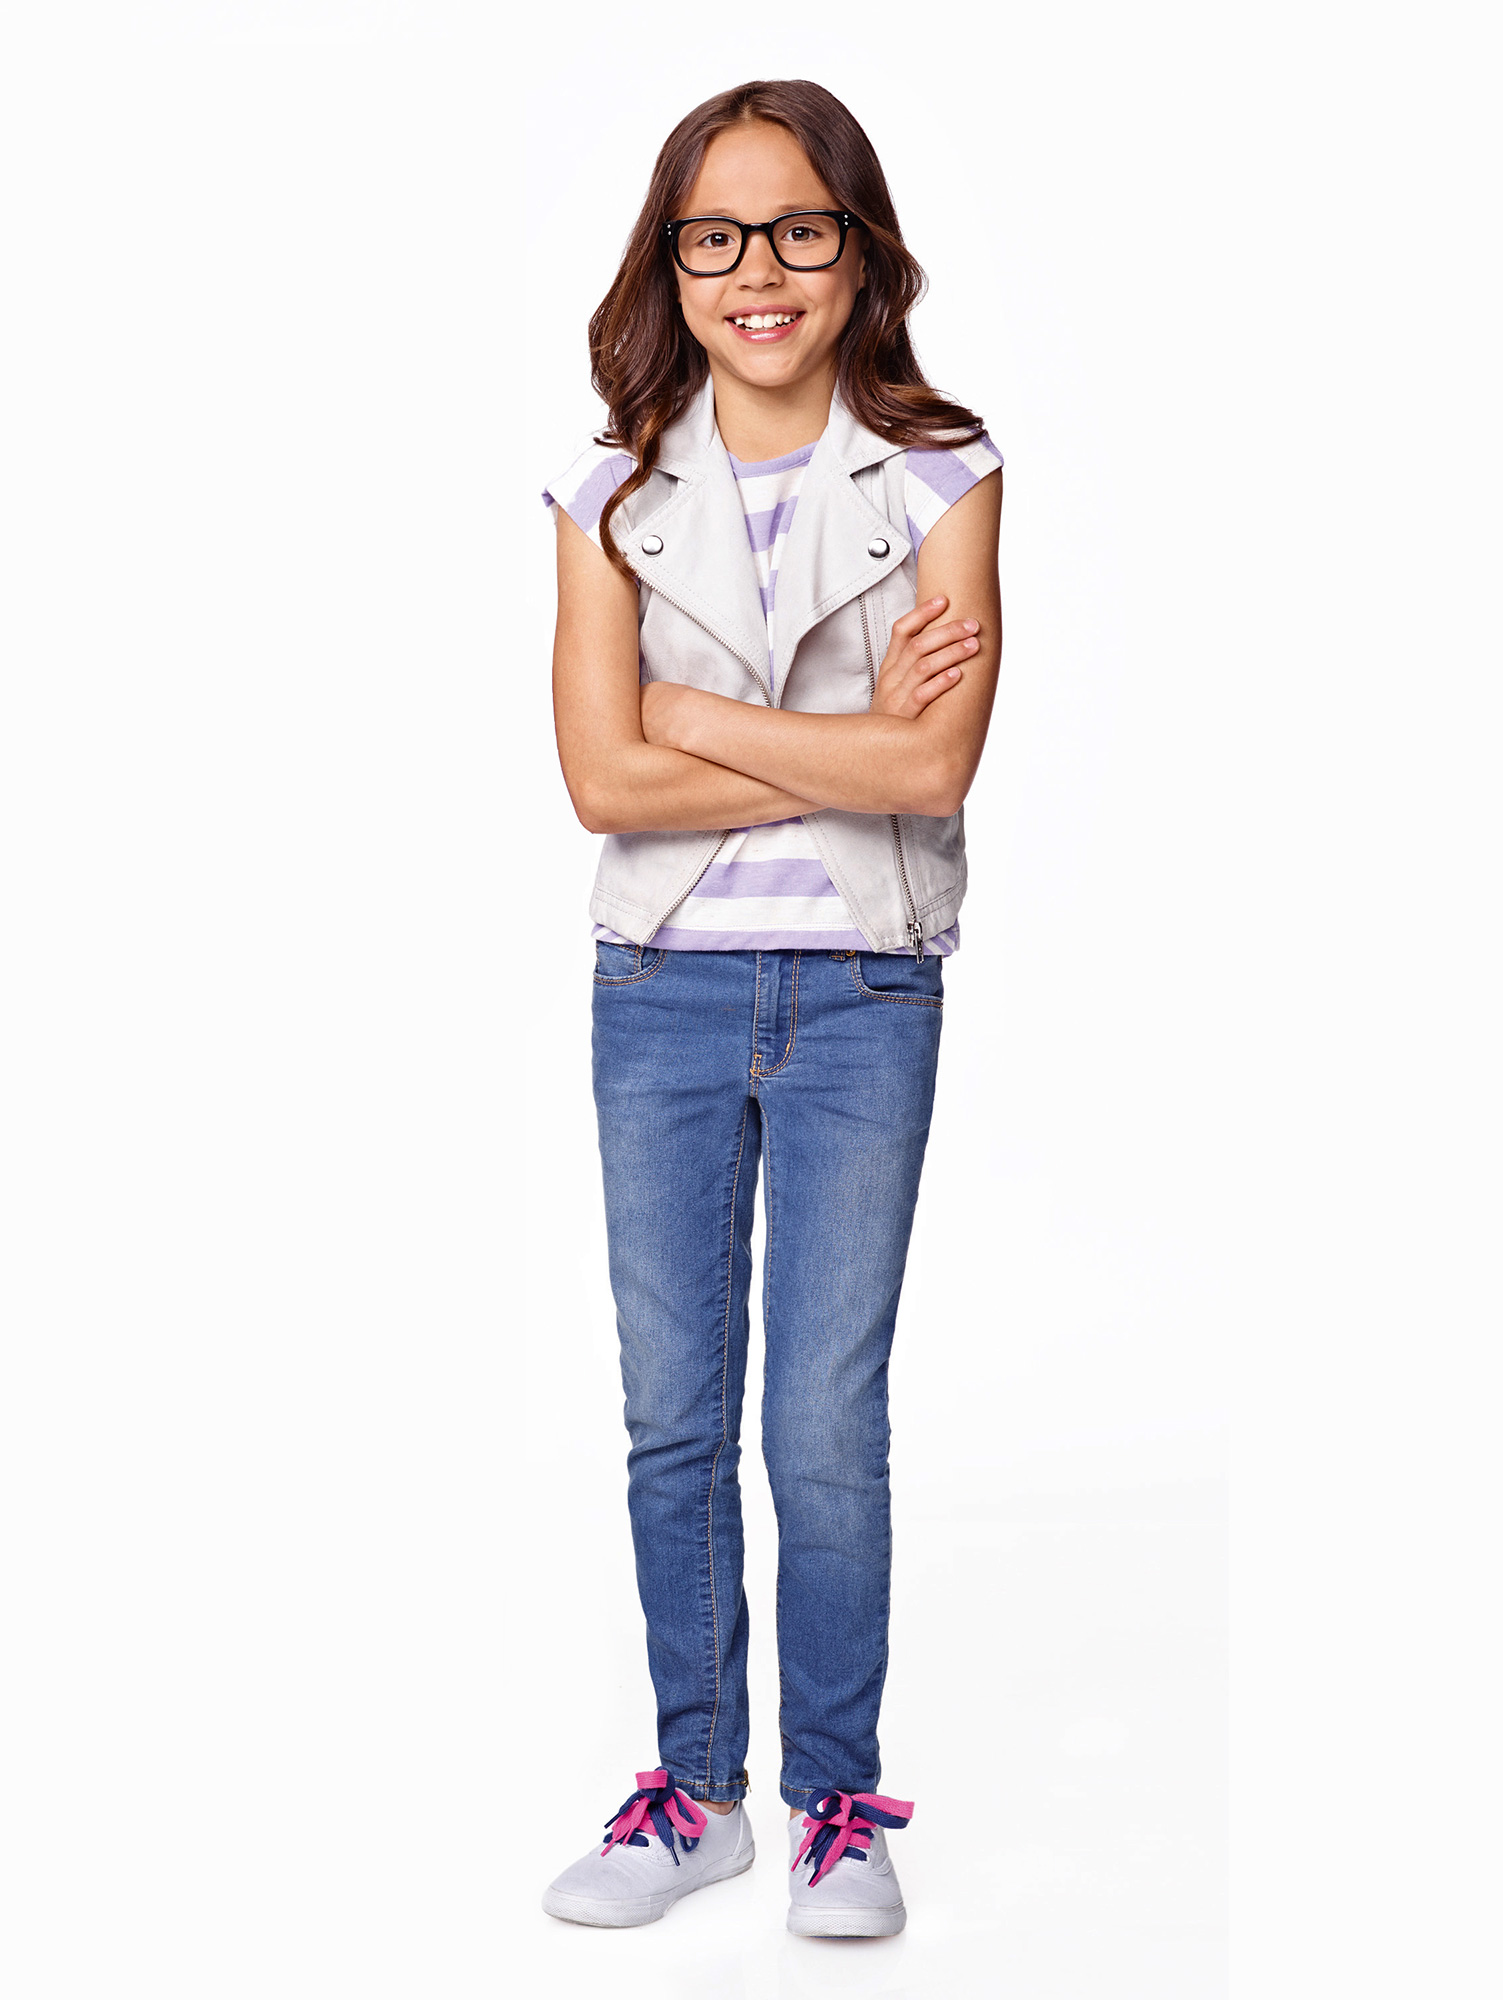 breanna yde instagrambreanna yde рост, breanna yde wiki, breanna yde инстаграм, breanna yde биография, breanna yde age, breanna yde parents, breanna yde wikipedia, breanna yde school of rock, breanna yde voice, breanna yde fandom, breanna yde relationship, breanna yde wallpaper, breanna yde site, breanna yde lance lim, breanna yde instagram, breanna yde сколько лет, breanna yde 2017, breanna yde 2016, breanna yde twitter, breanna yde youtube